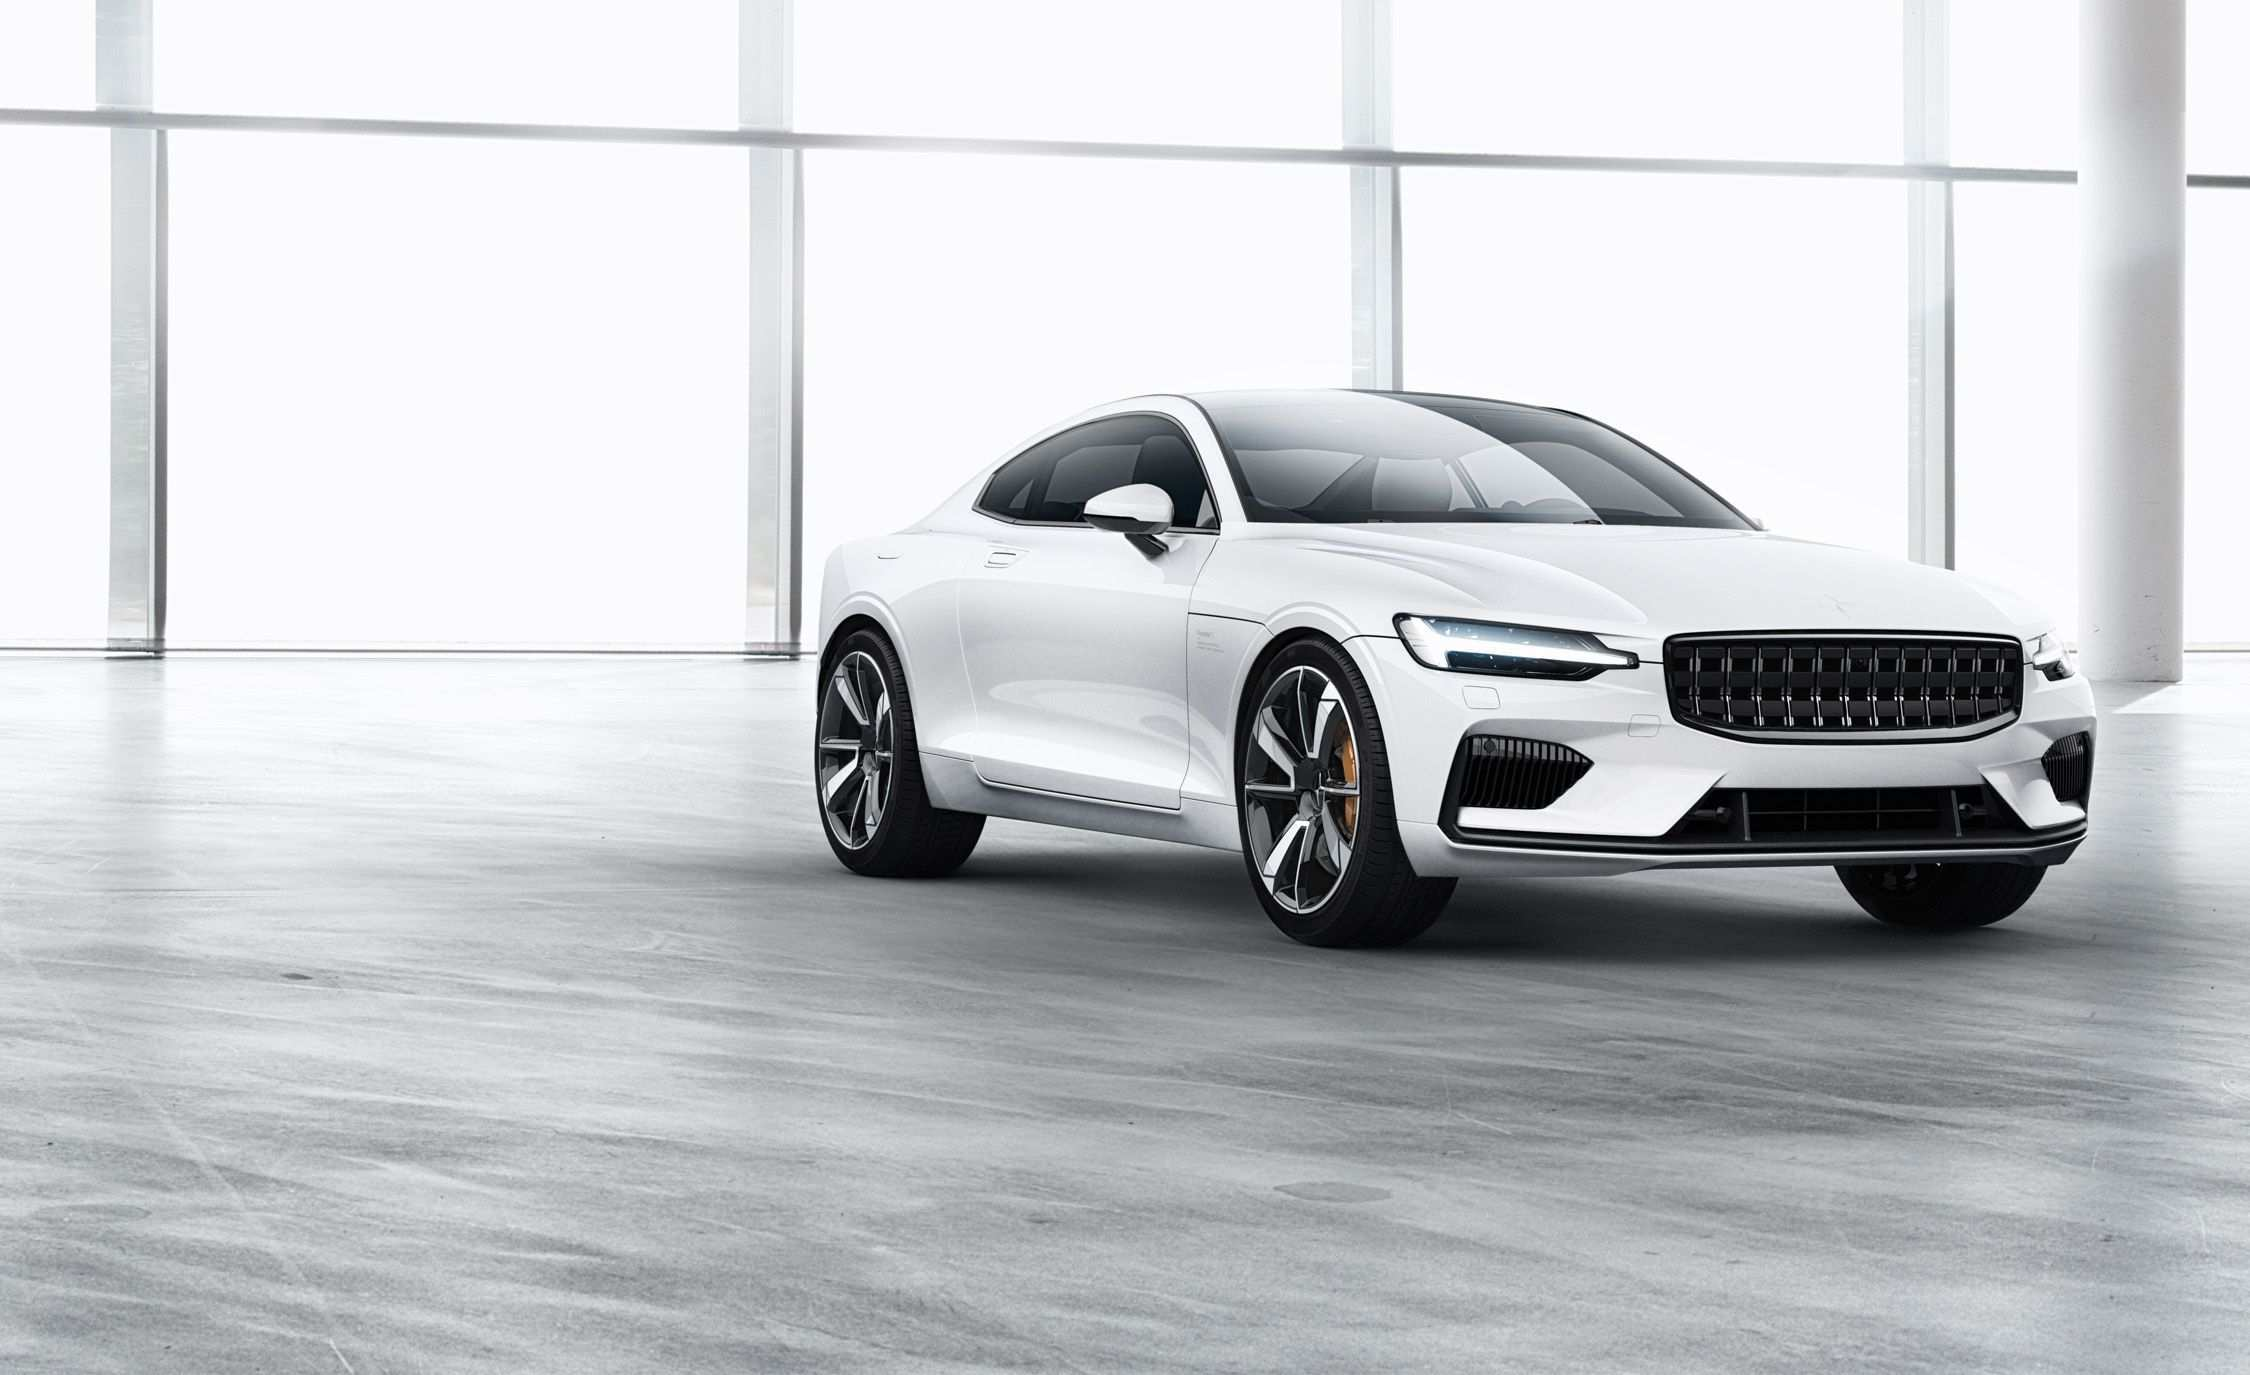 53 New Volvo S60 Polestar 2020 Model by Volvo S60 Polestar 2020